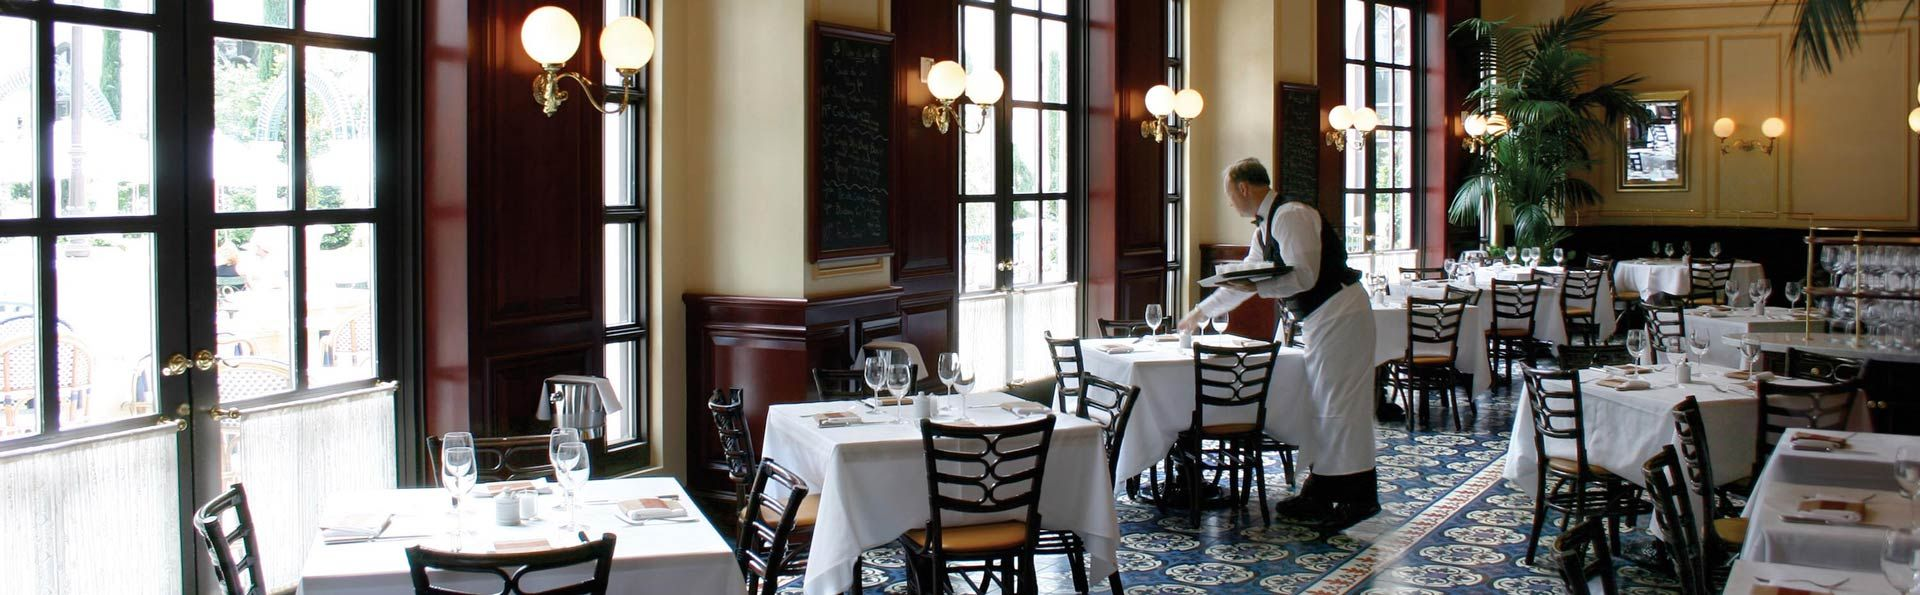 Dine At One Of The Best French Restaurants In Las Vegas Celebrity Chef Thomas Keller Brings His Famous Bistro To Venetian